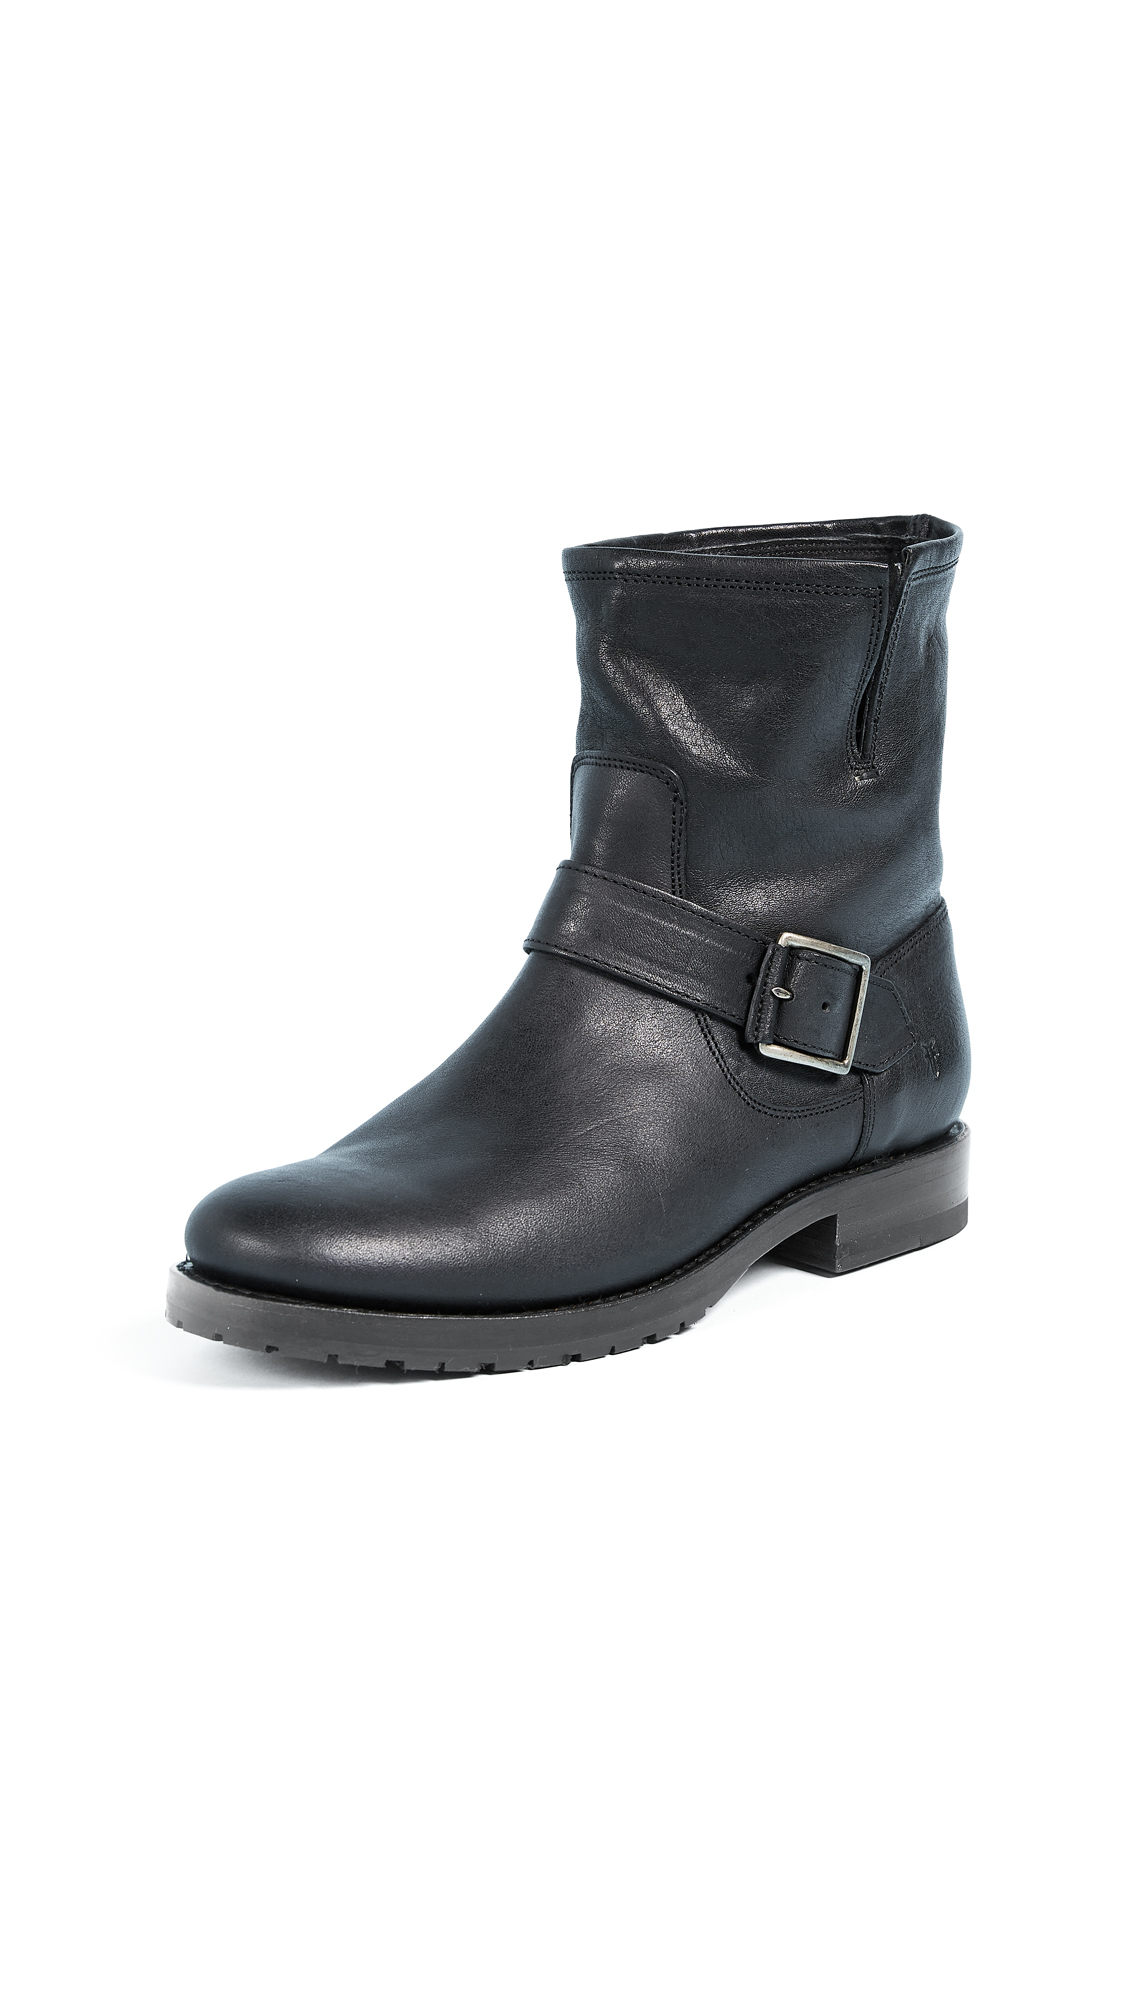 Frye Natalie Short Engineer Boots - Black